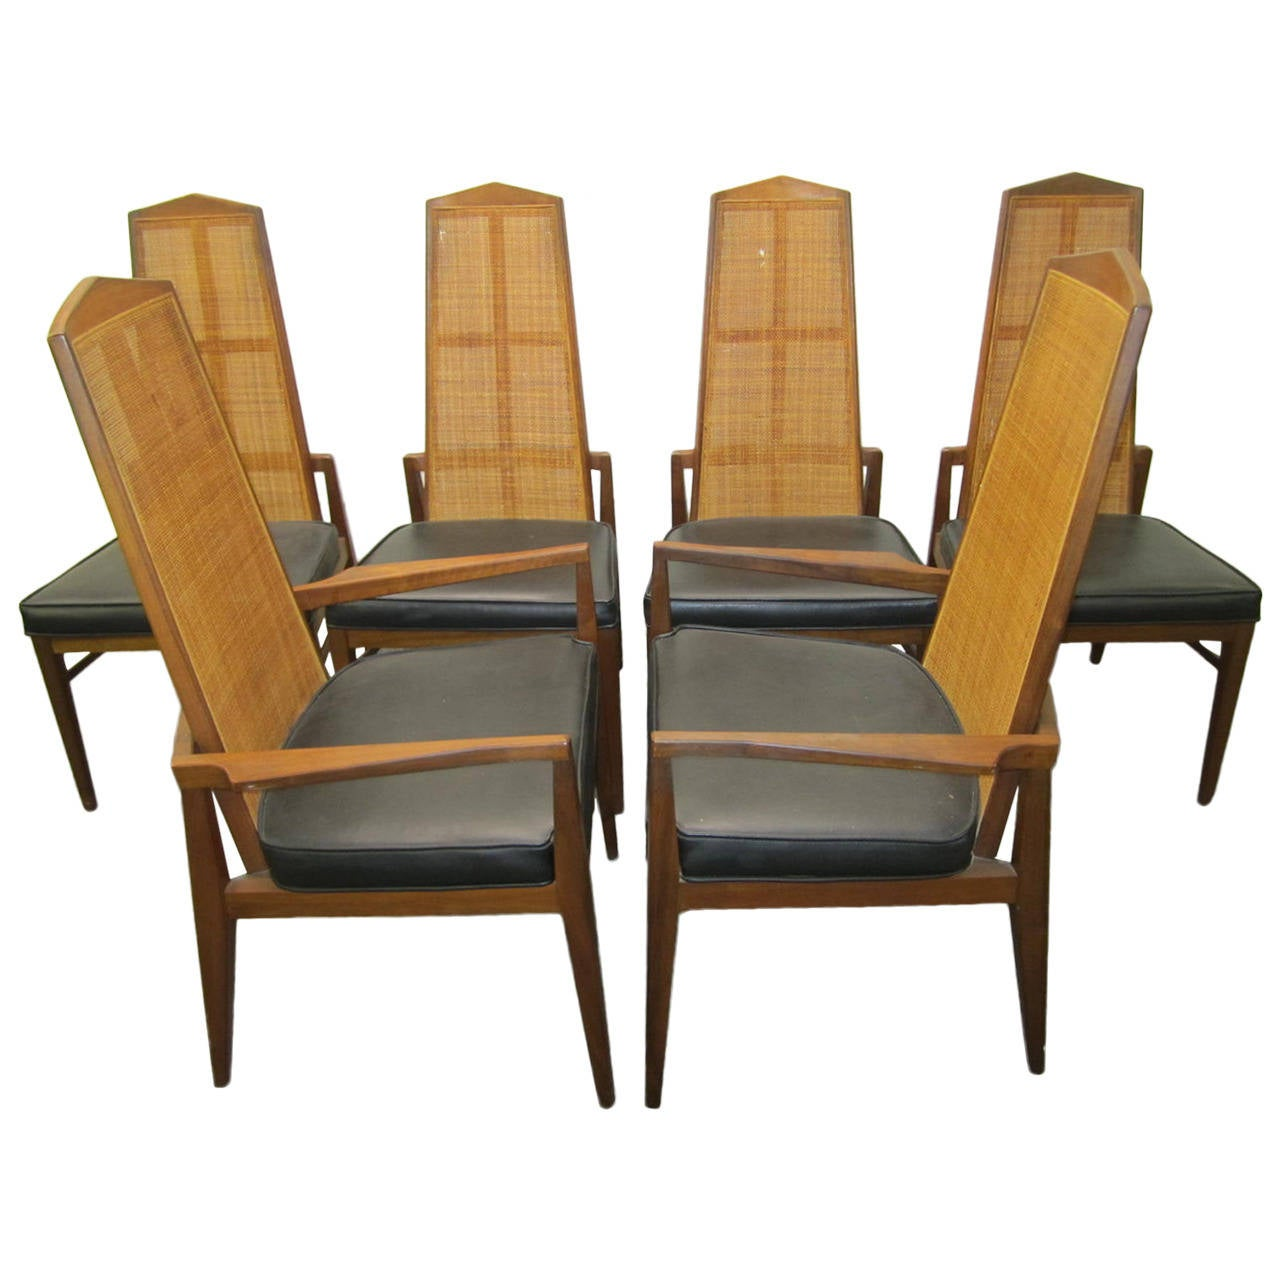 Six Walnut Foster and McDavid Cane Back Dining Chairs, Mid-Century Modern For Sale